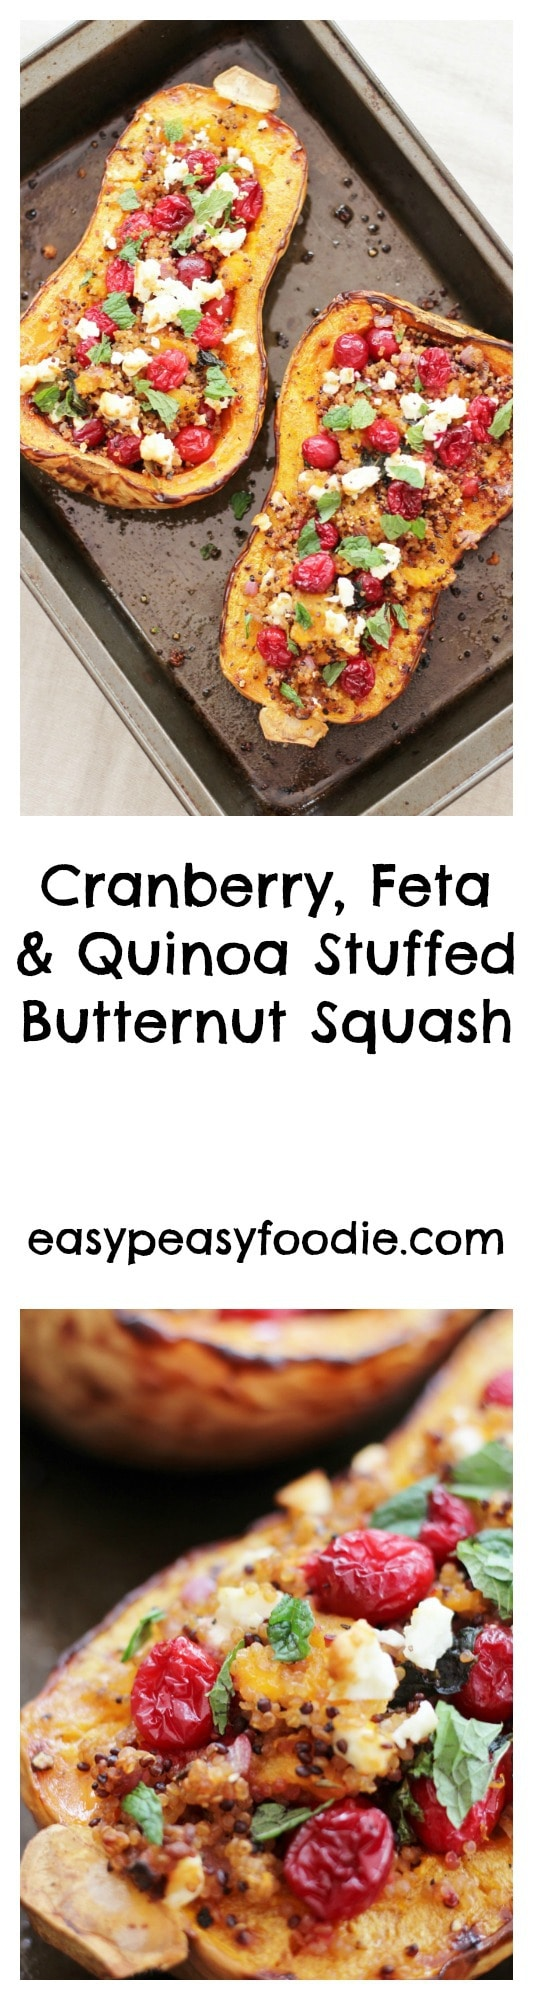 Cranberry, Feta and Quinoa stuffed Butternut Squash - pinnable image for Pinterest